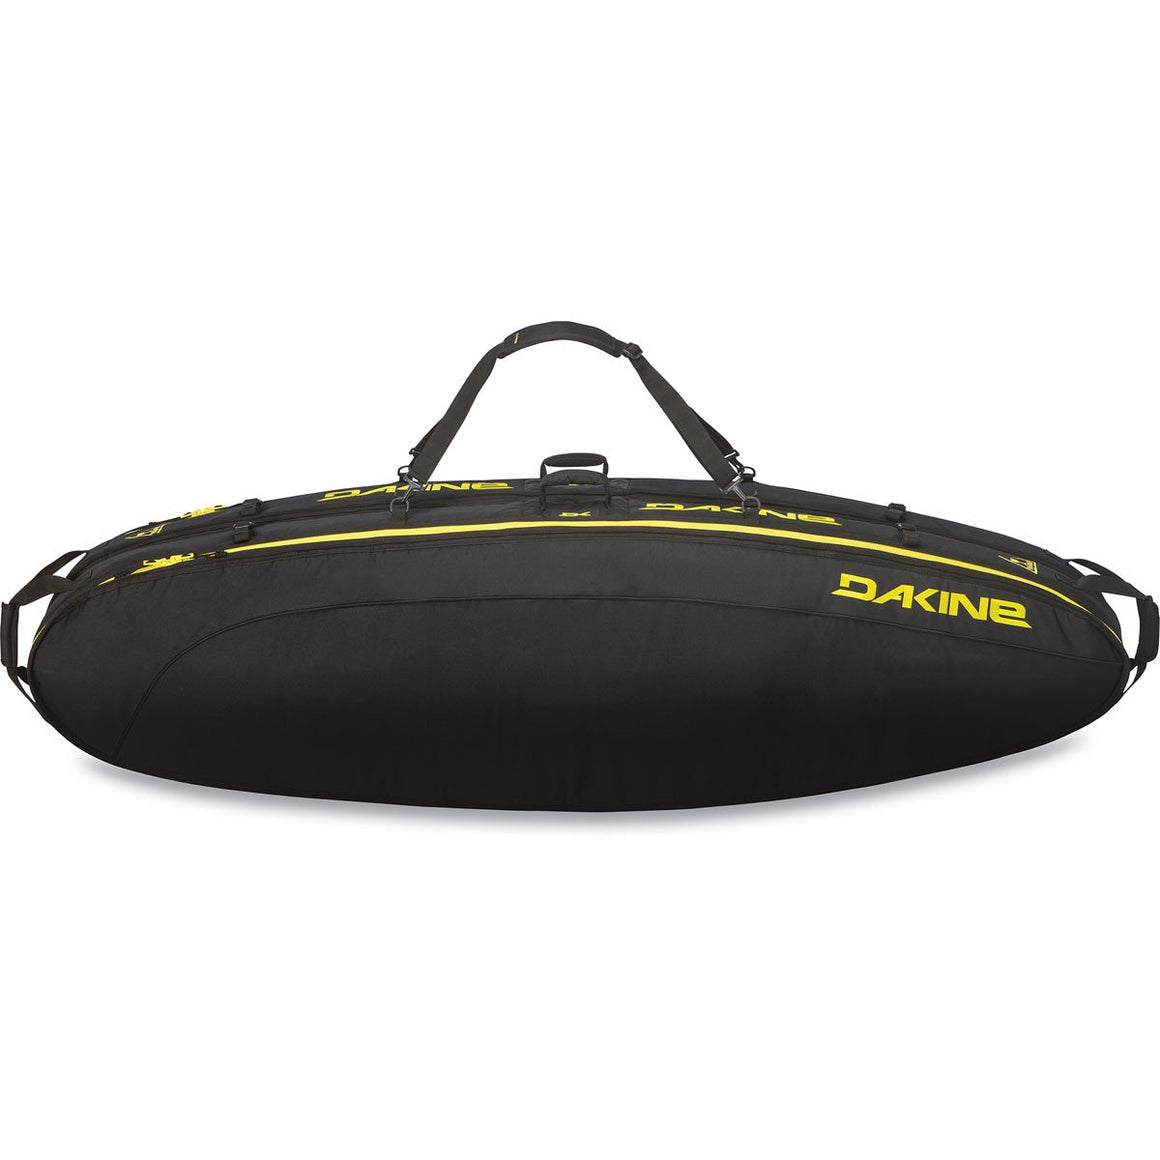 Dakine Board Cover - 6'6 Regulator Double/Quad Convertible - Black - Surf Ontario